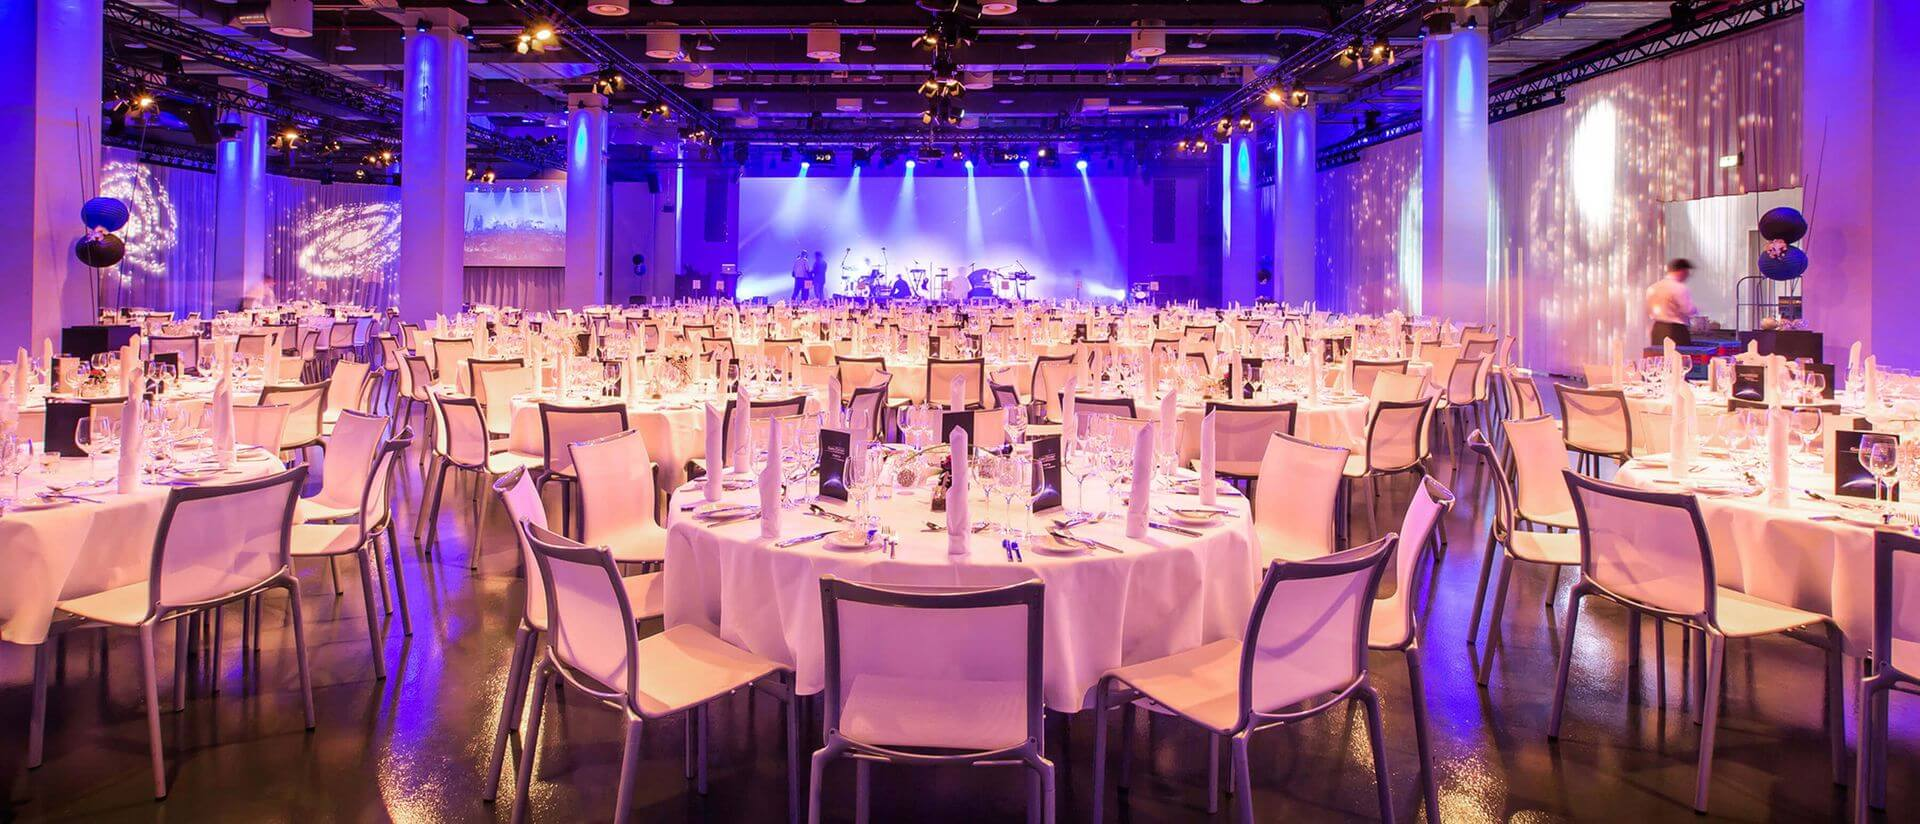 reef berlin gala dinner set event area